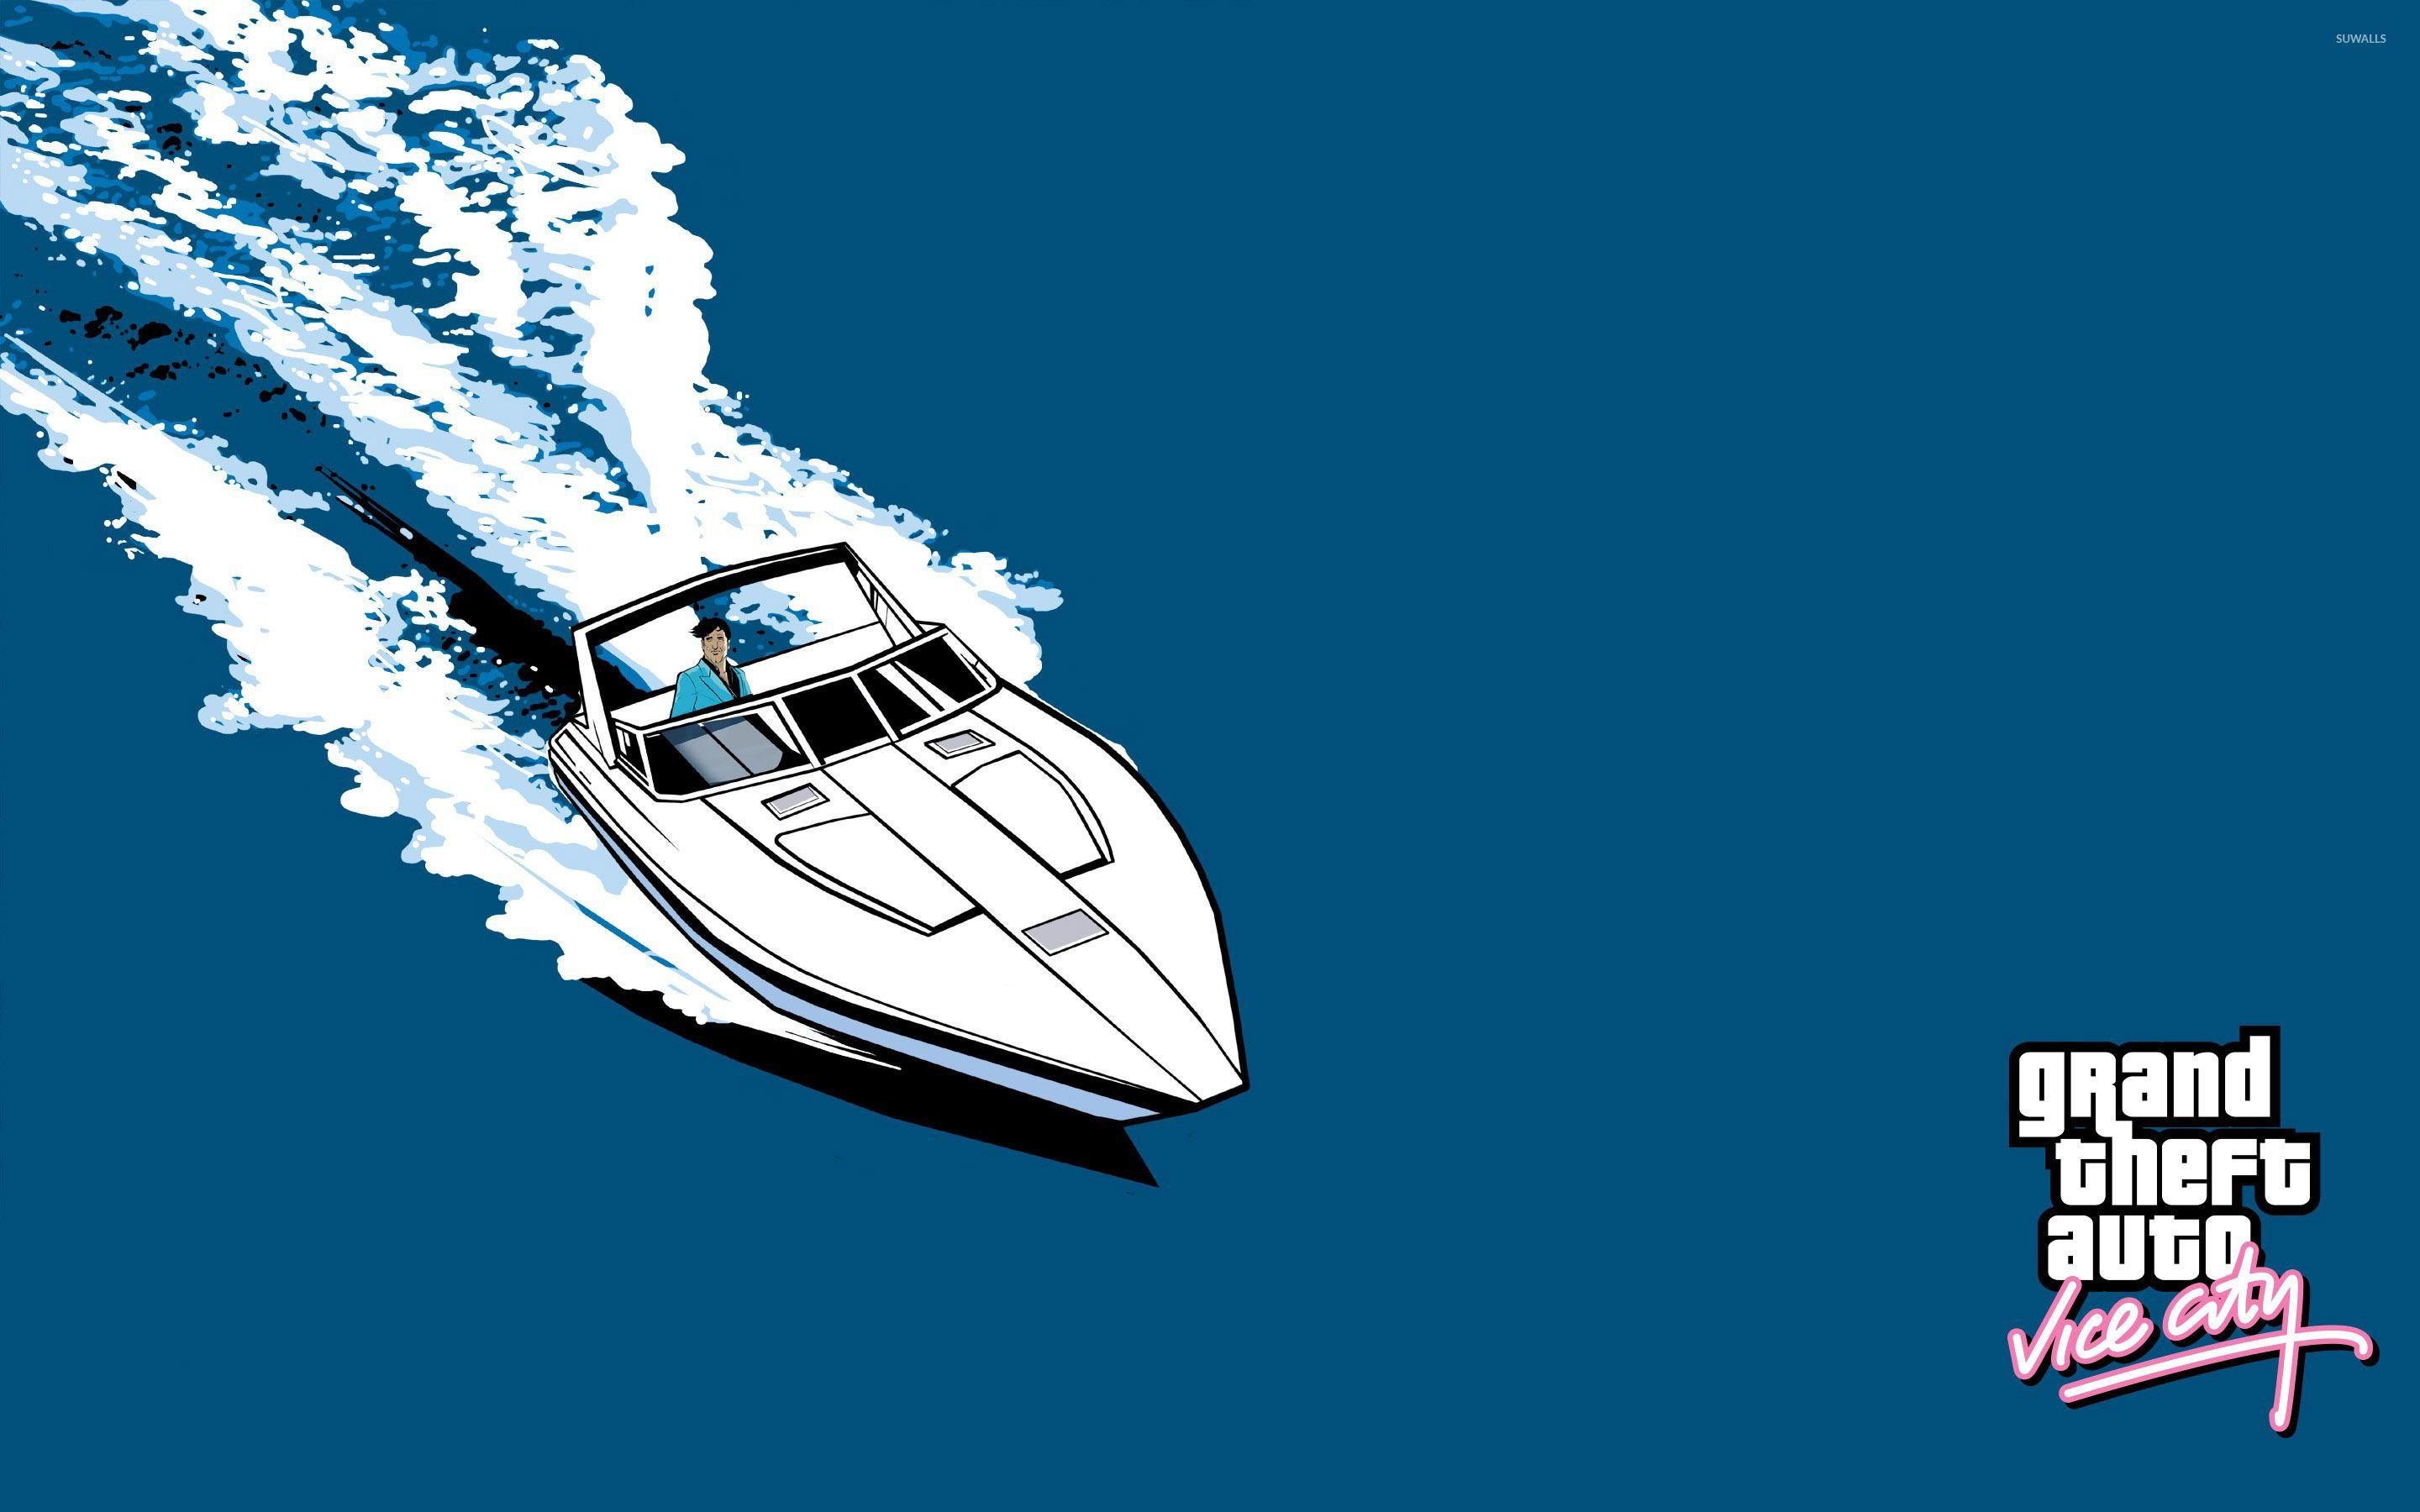 Yacht ride in Grand Theft Auto: Vice City wallpaper - Game ...